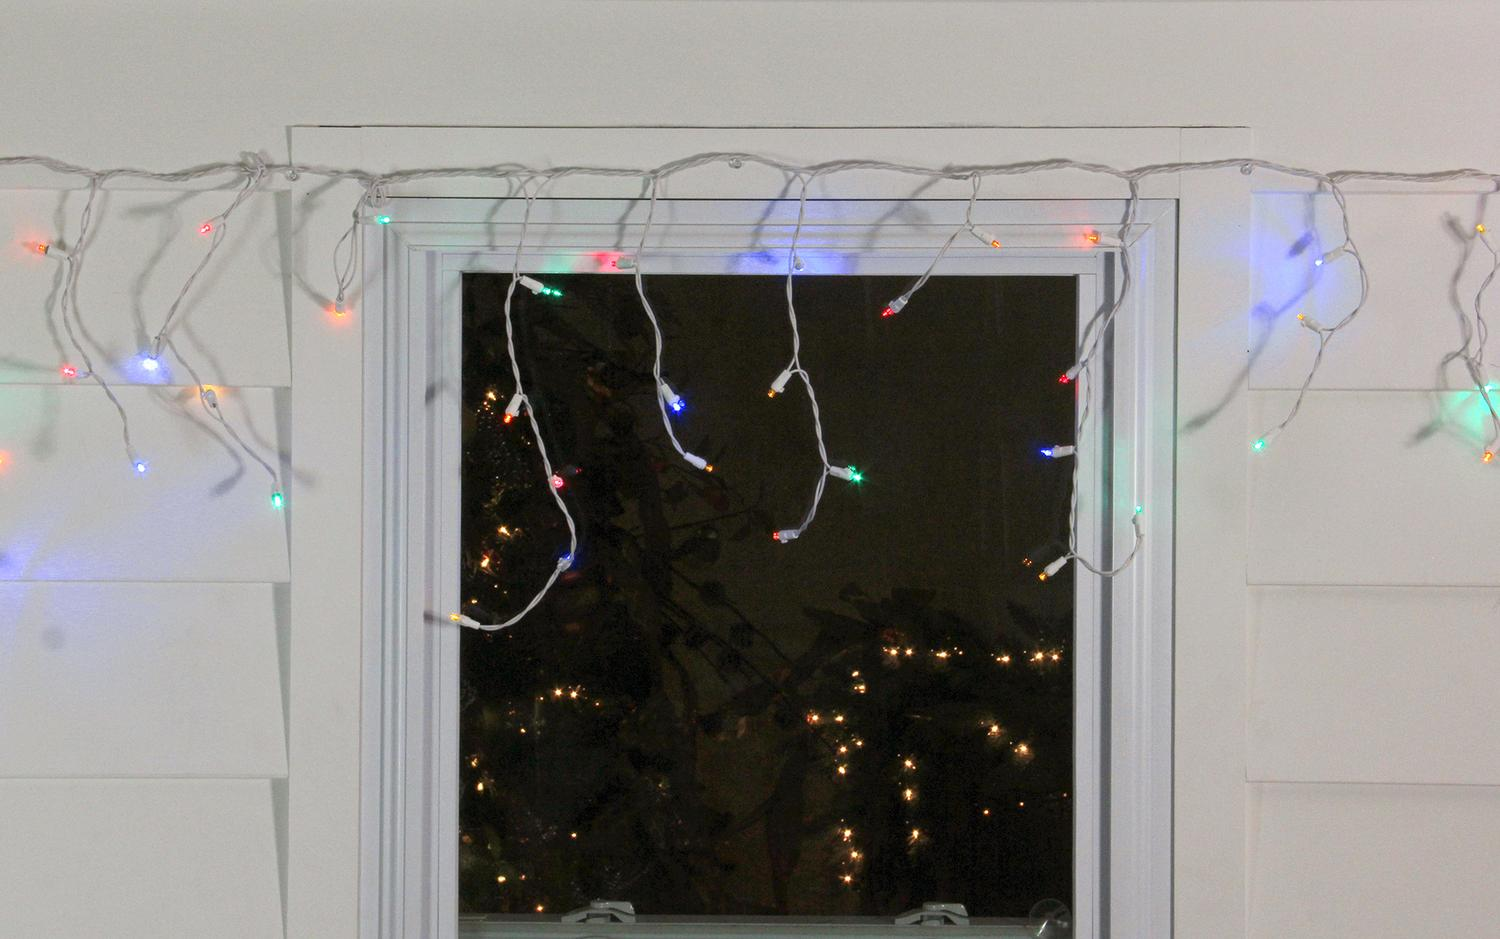 northlight set of 100 multi color led wide angle icicle christmas lights white wire